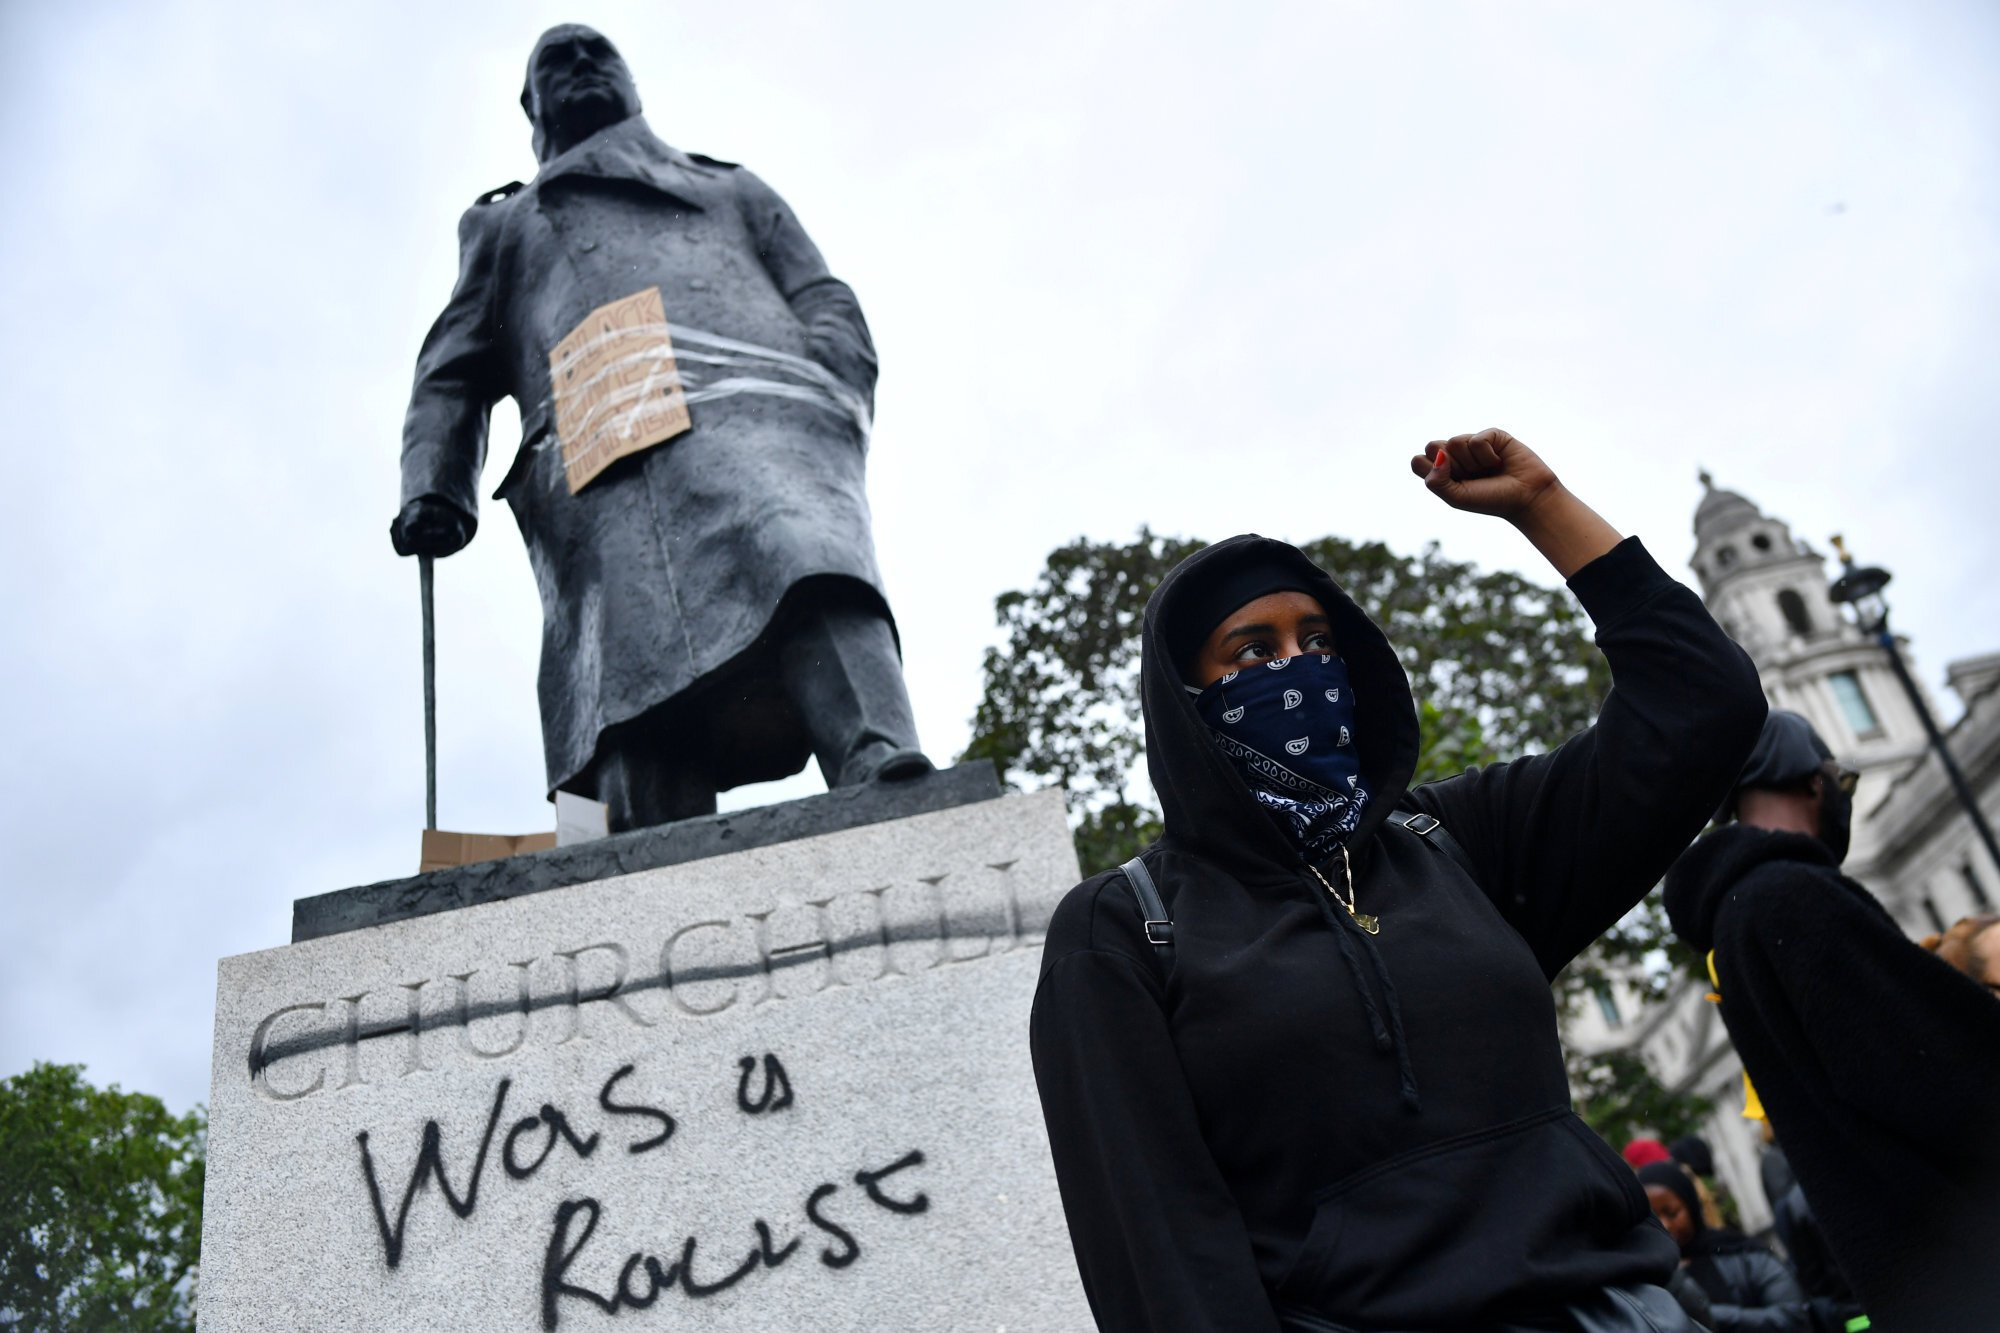 Graffiti on a statue of Winston Churchill in Parliament Square, London, during a Black Lives Matter protest. Photo: Reuters